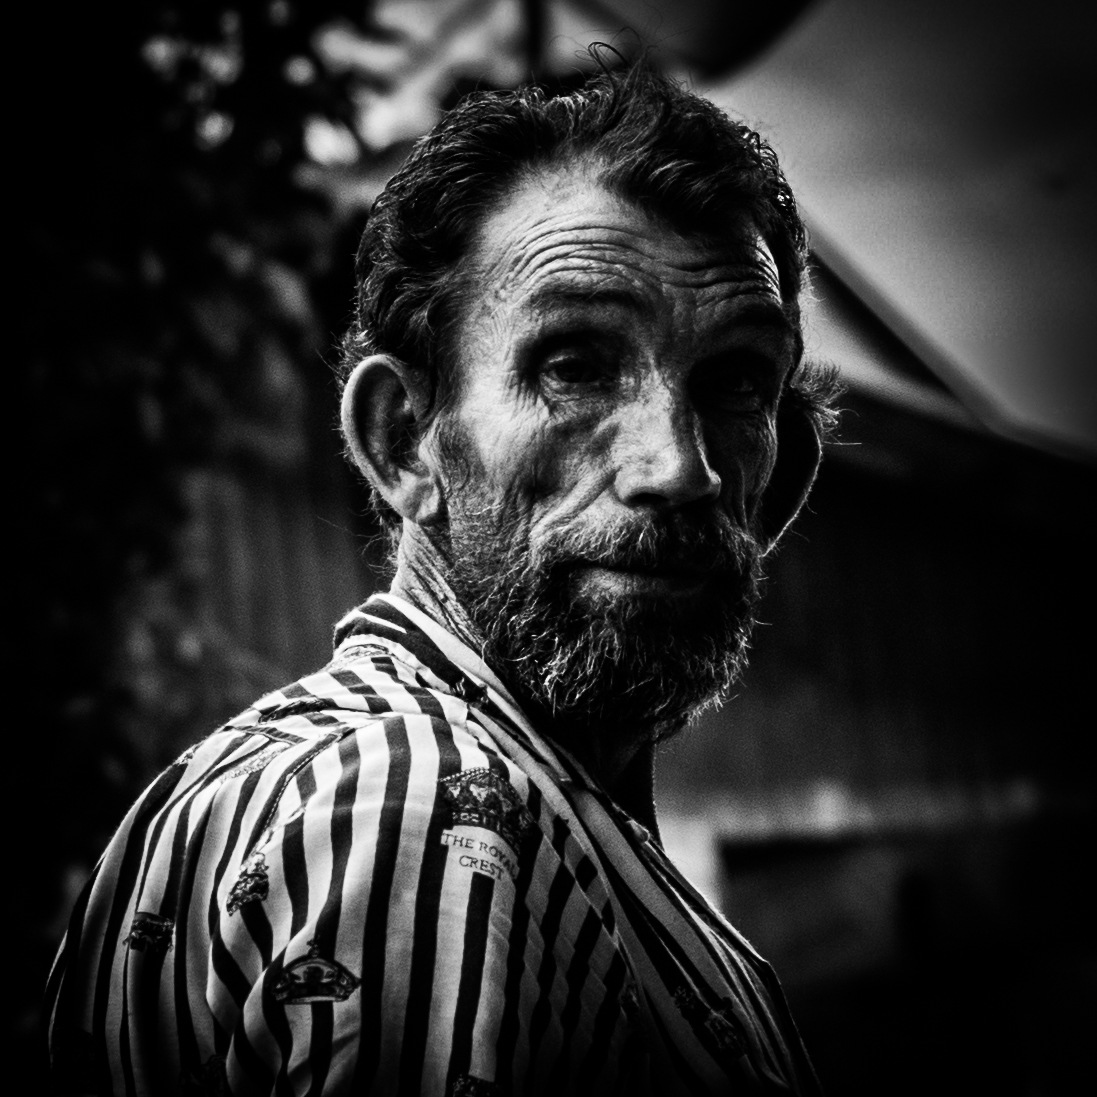 The old Man by Anderson Portella